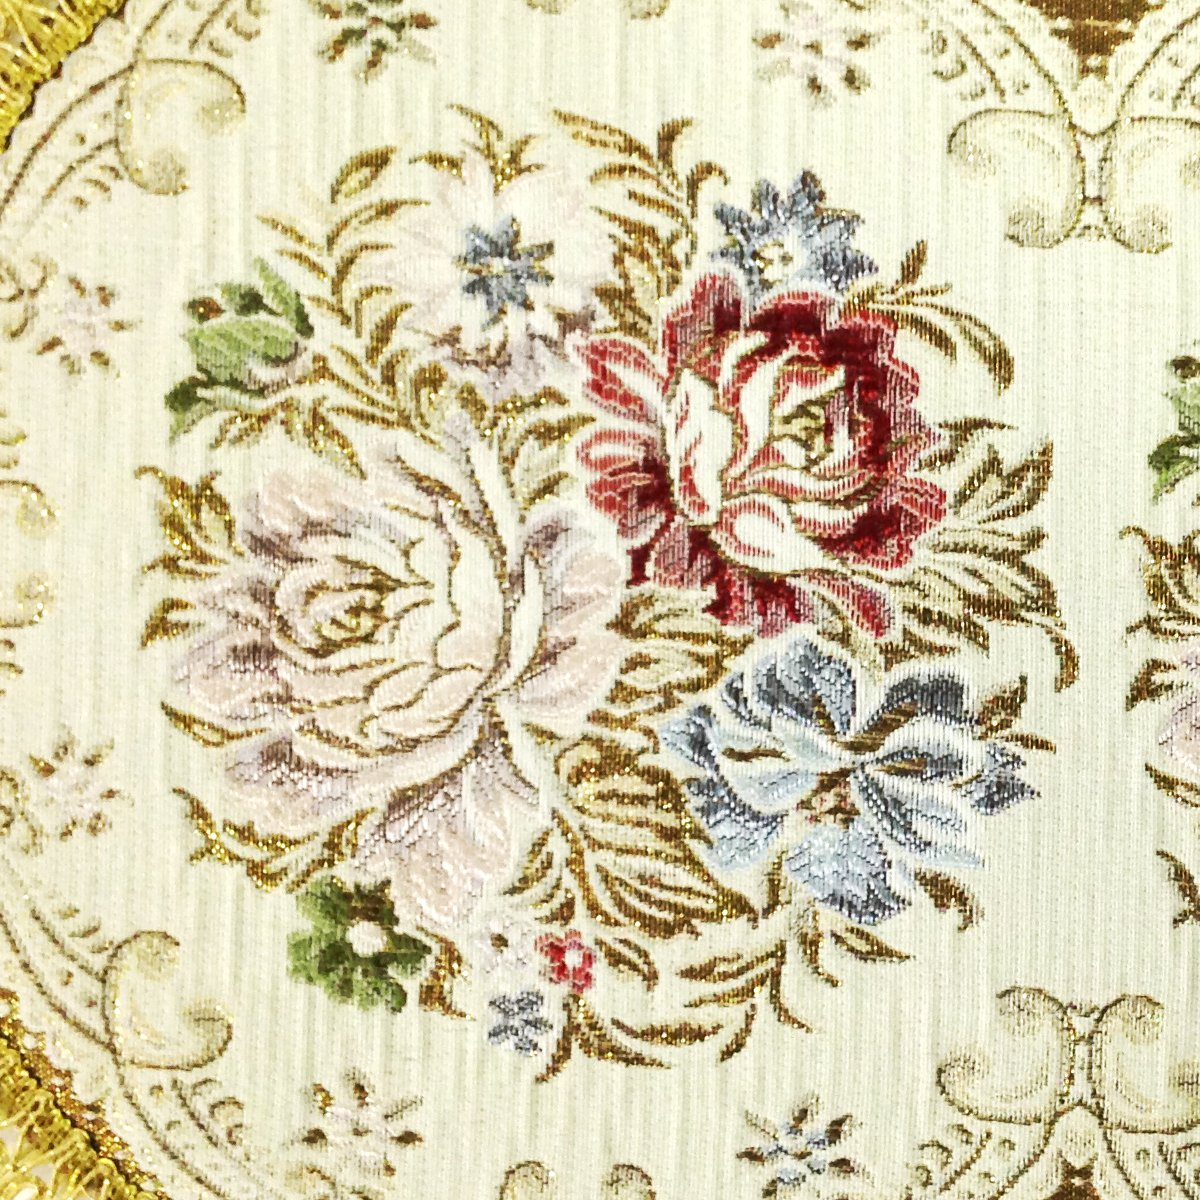 Wrapables 18.5 x 13 Inch Oval Vintage Floral Placemat with Gold Embroidery